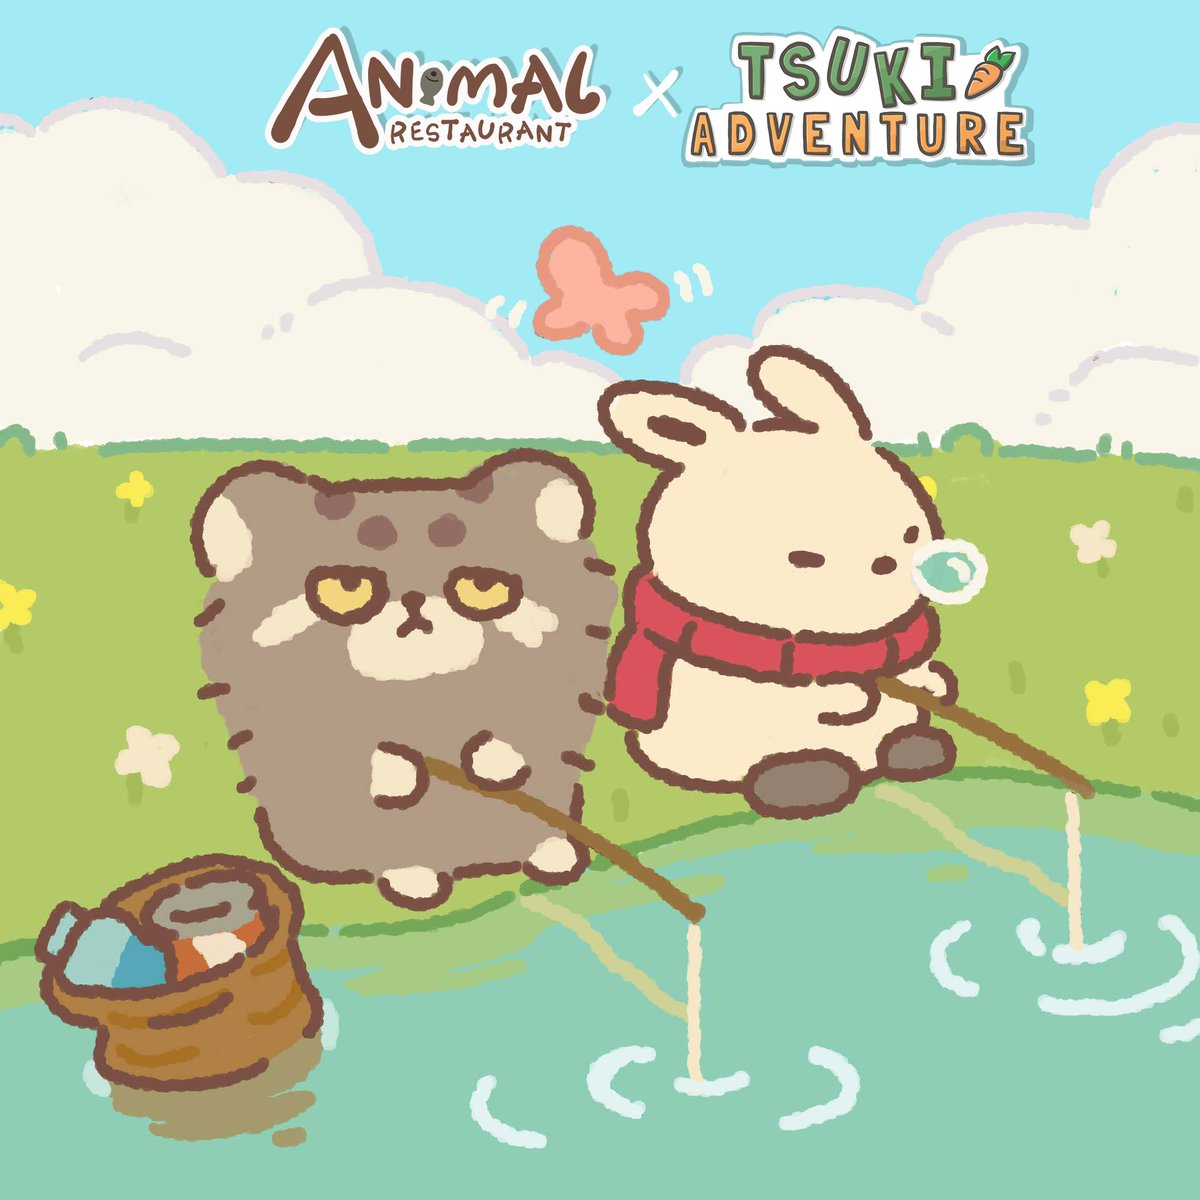 Animal Restaurant On Twitter They Are Both Good At Fishing And You Pick Which One Rabbit Ding Or Tsuki Animal Restaurant Animalrestaurant Tsuki Tsukiadventure Rabbitding Fishing Catsoftwitter Https T Co Larplfiblx